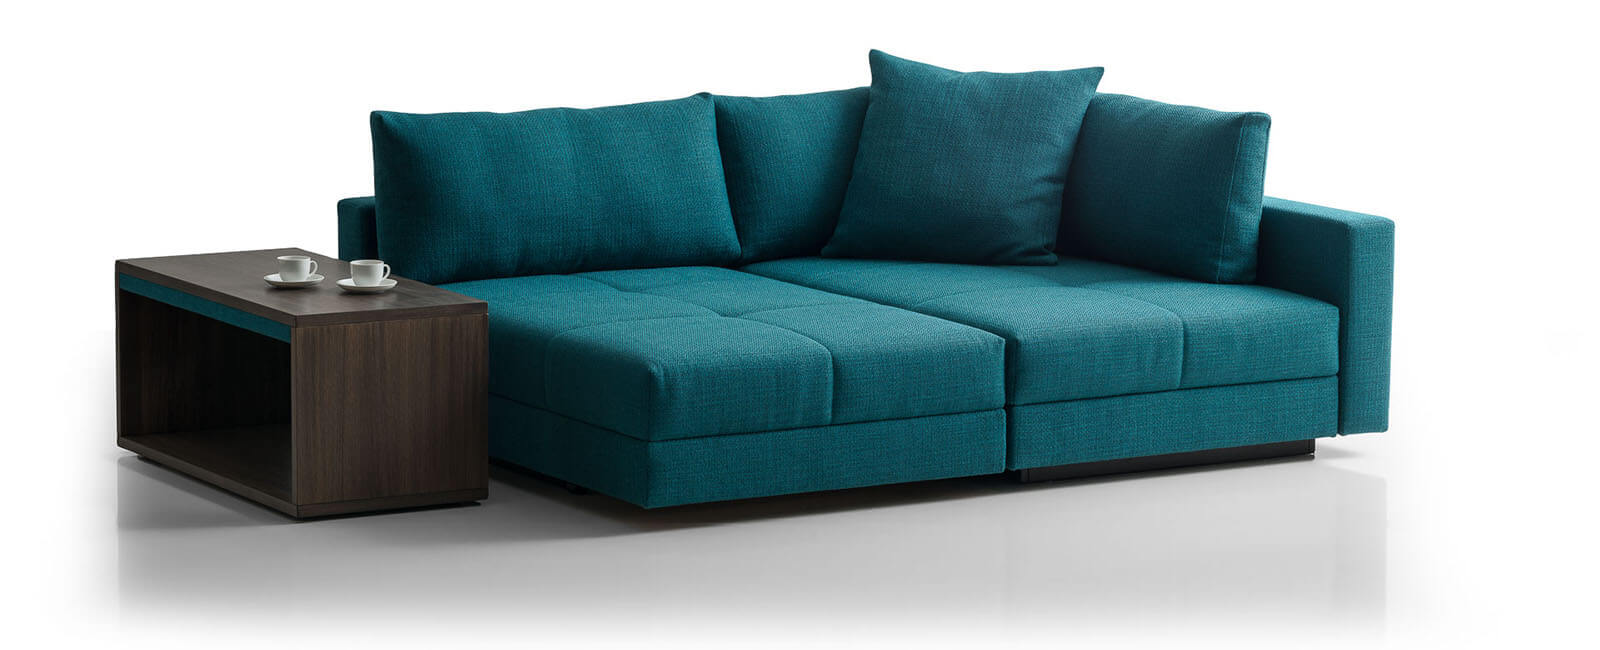 Franz Fertig Sofa Club Sofa Franz Fertig Traditional